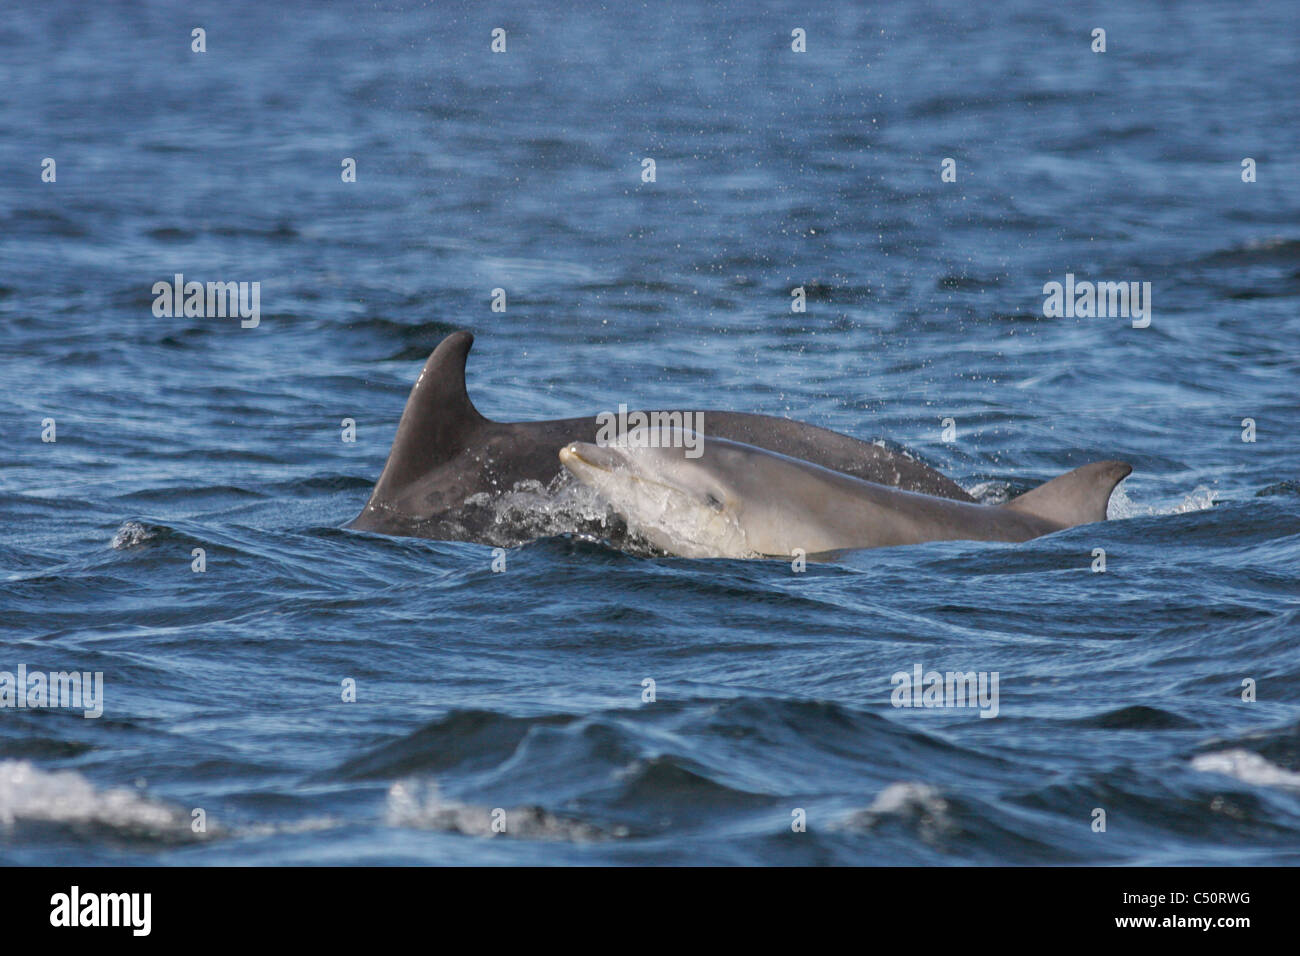 Young Bottlenose dolphin (Tursiops truncatus) swimming next to its mother, Moray Firth, Scotland, UK - Stock Image